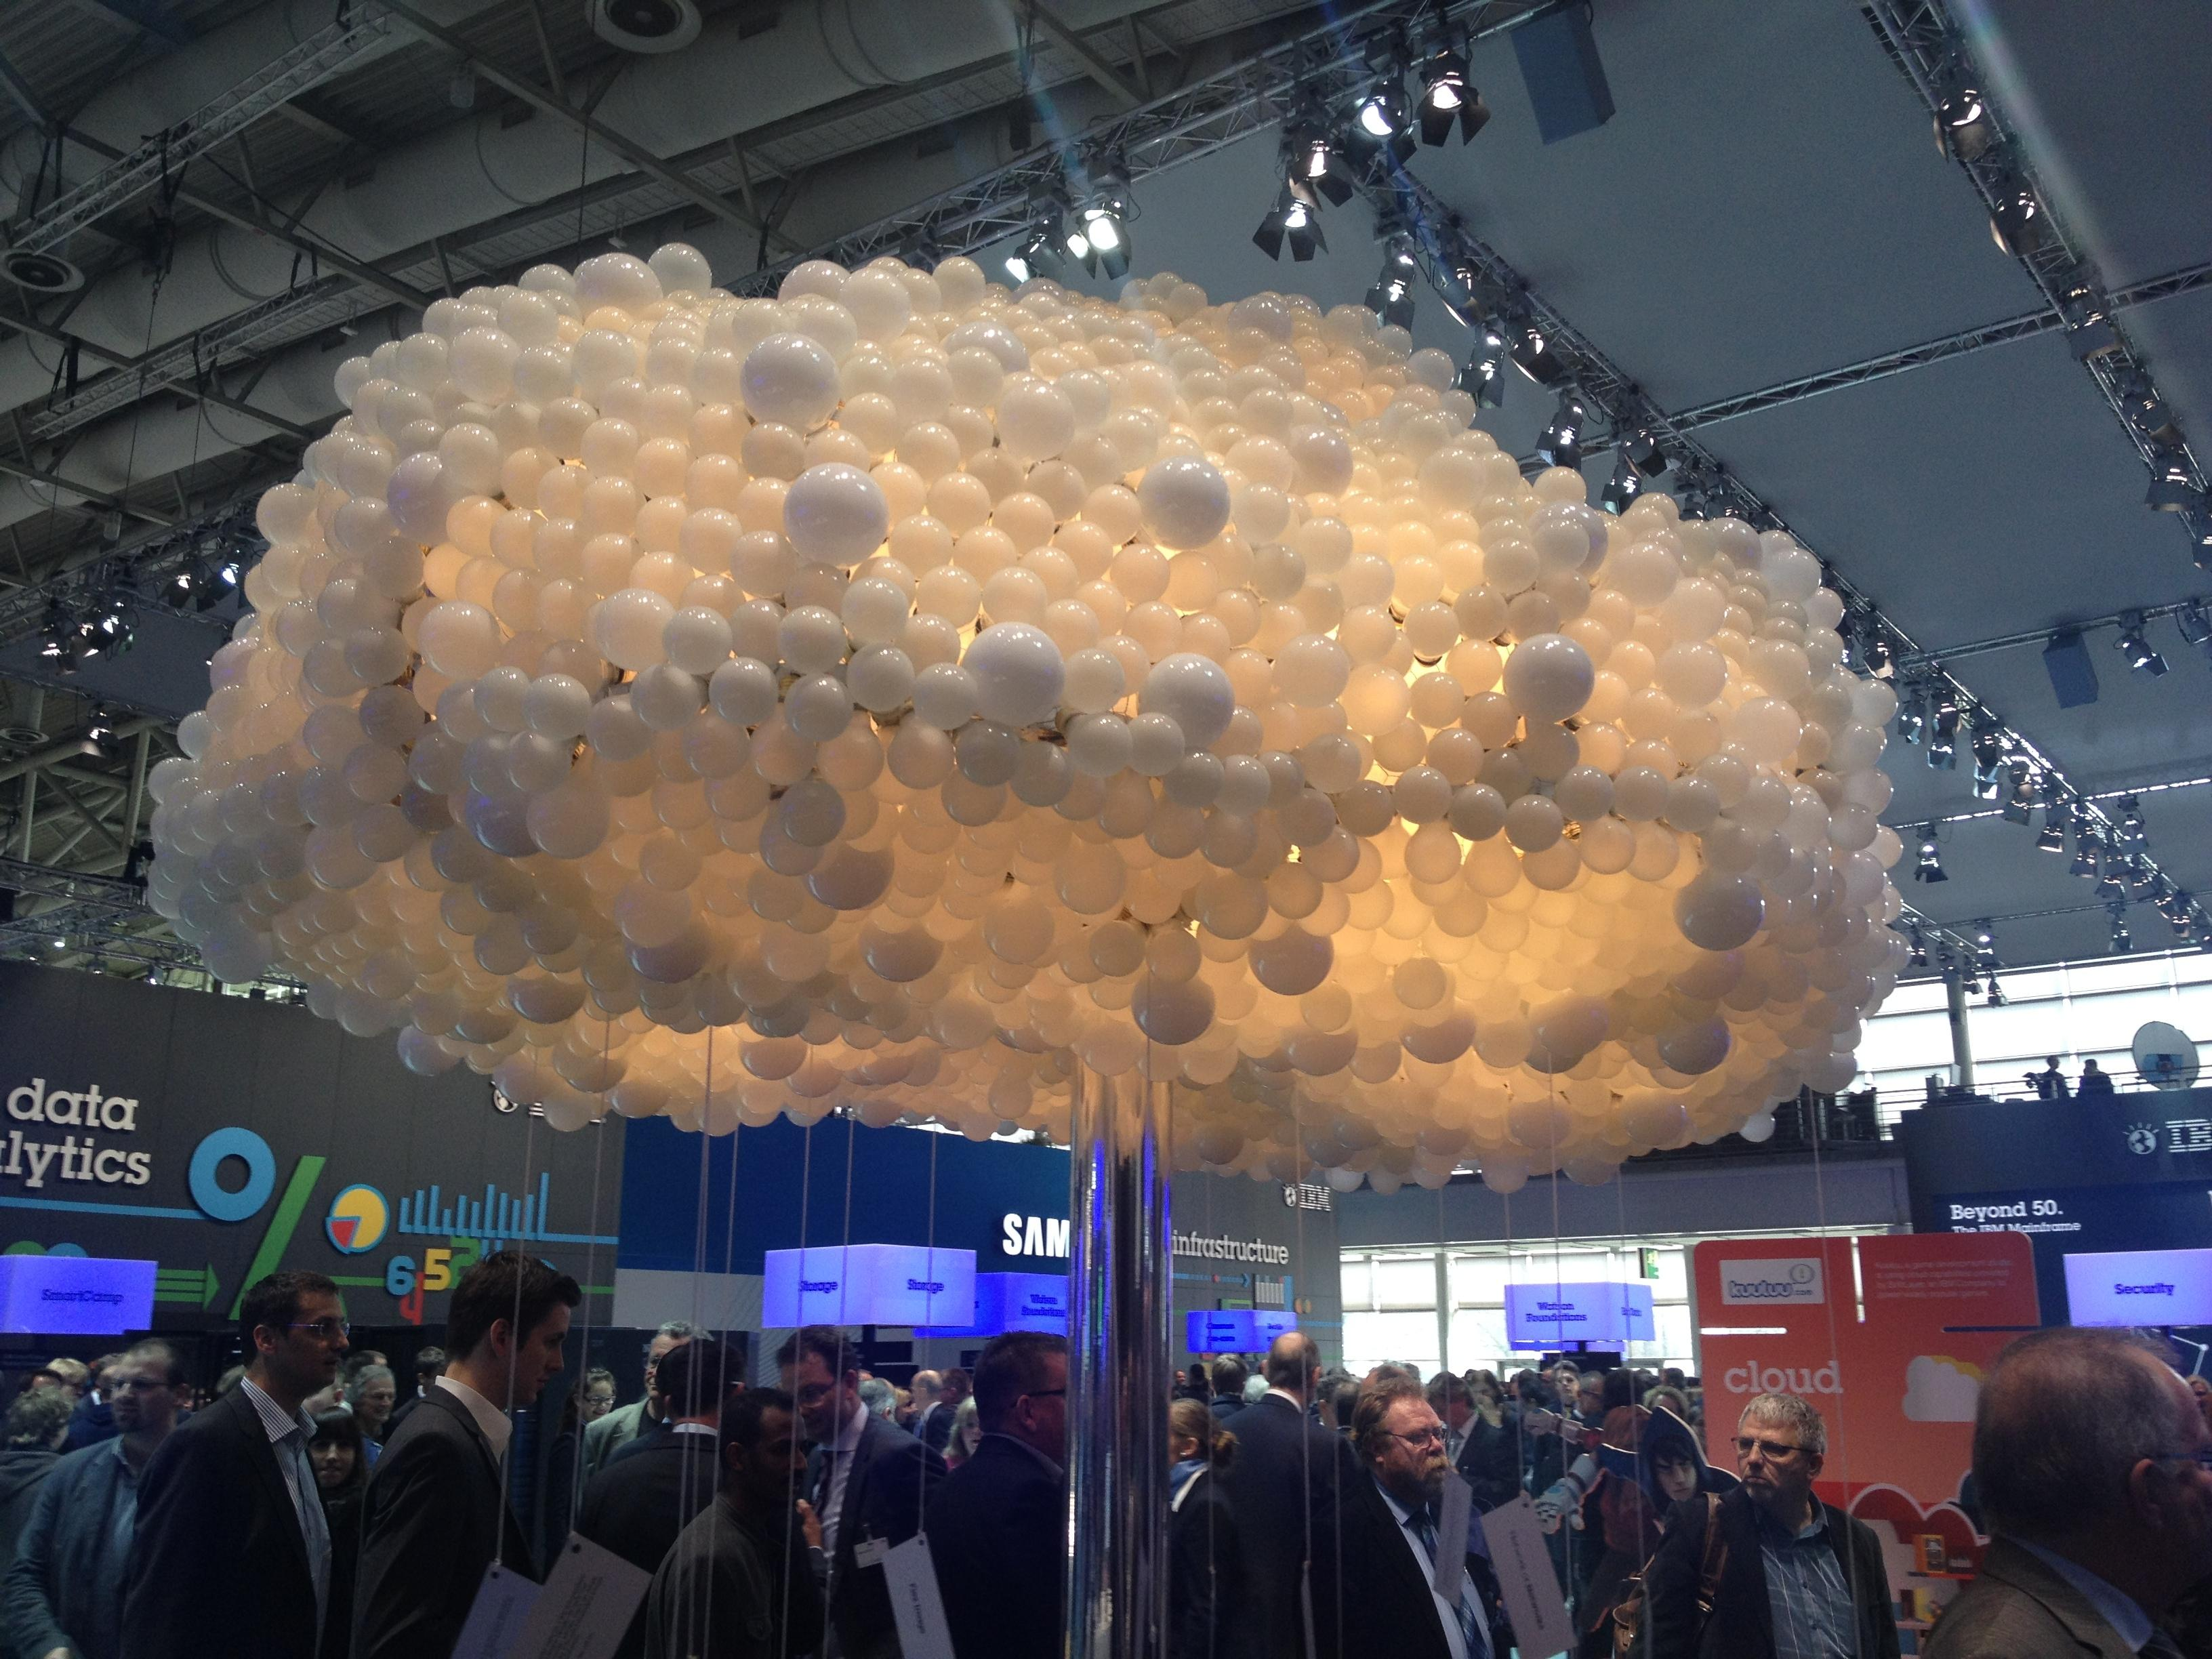 Cloud CeBIT 2014